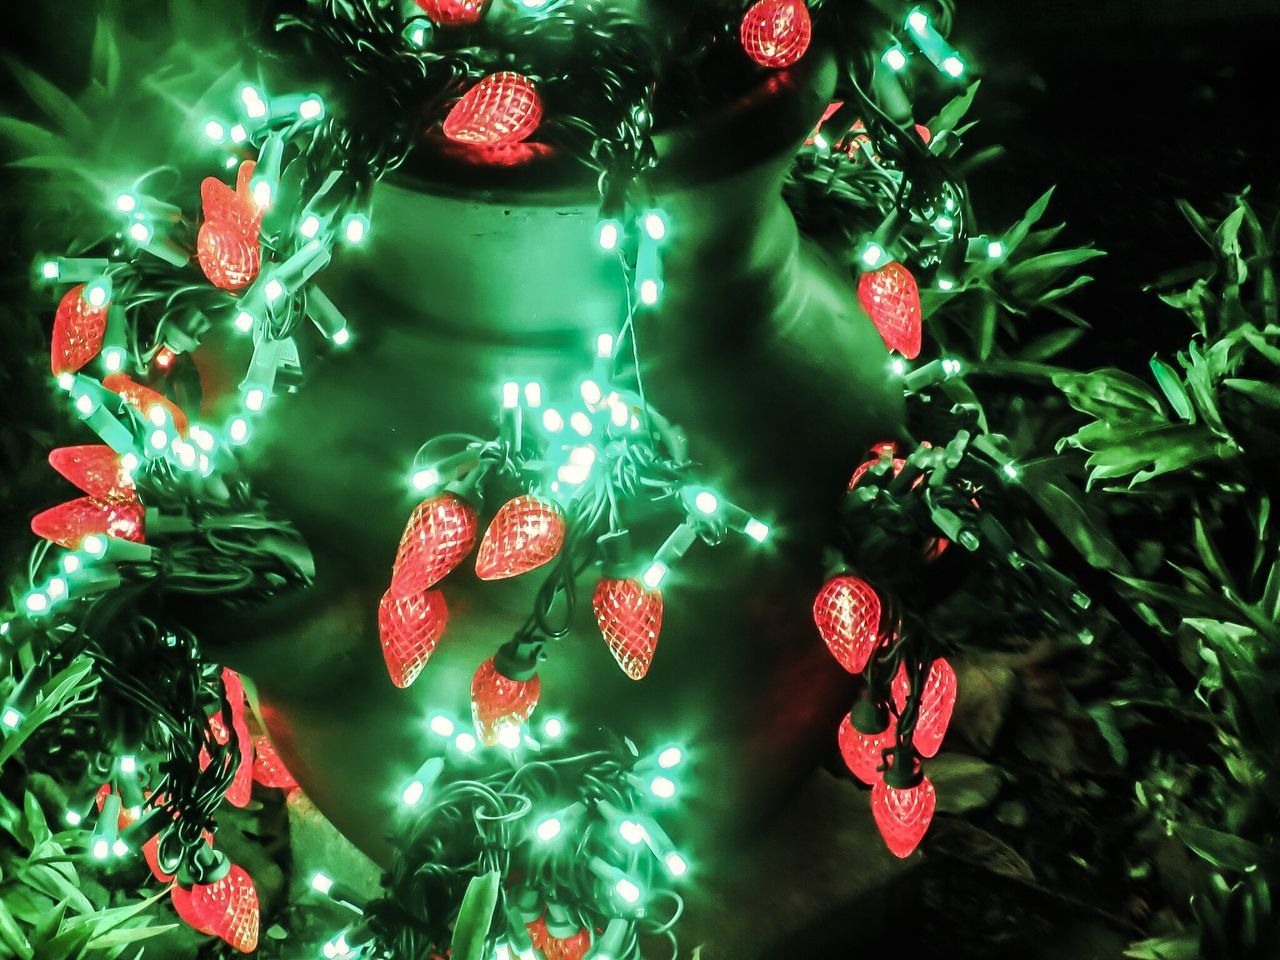 Can't get enough of these strawberry lights 😁 Green Color Celebration Illuminated Outdoors Bellevue Botanical Gardens Bellevue Phoyography Canonphotography Canon First Eyeem Photo